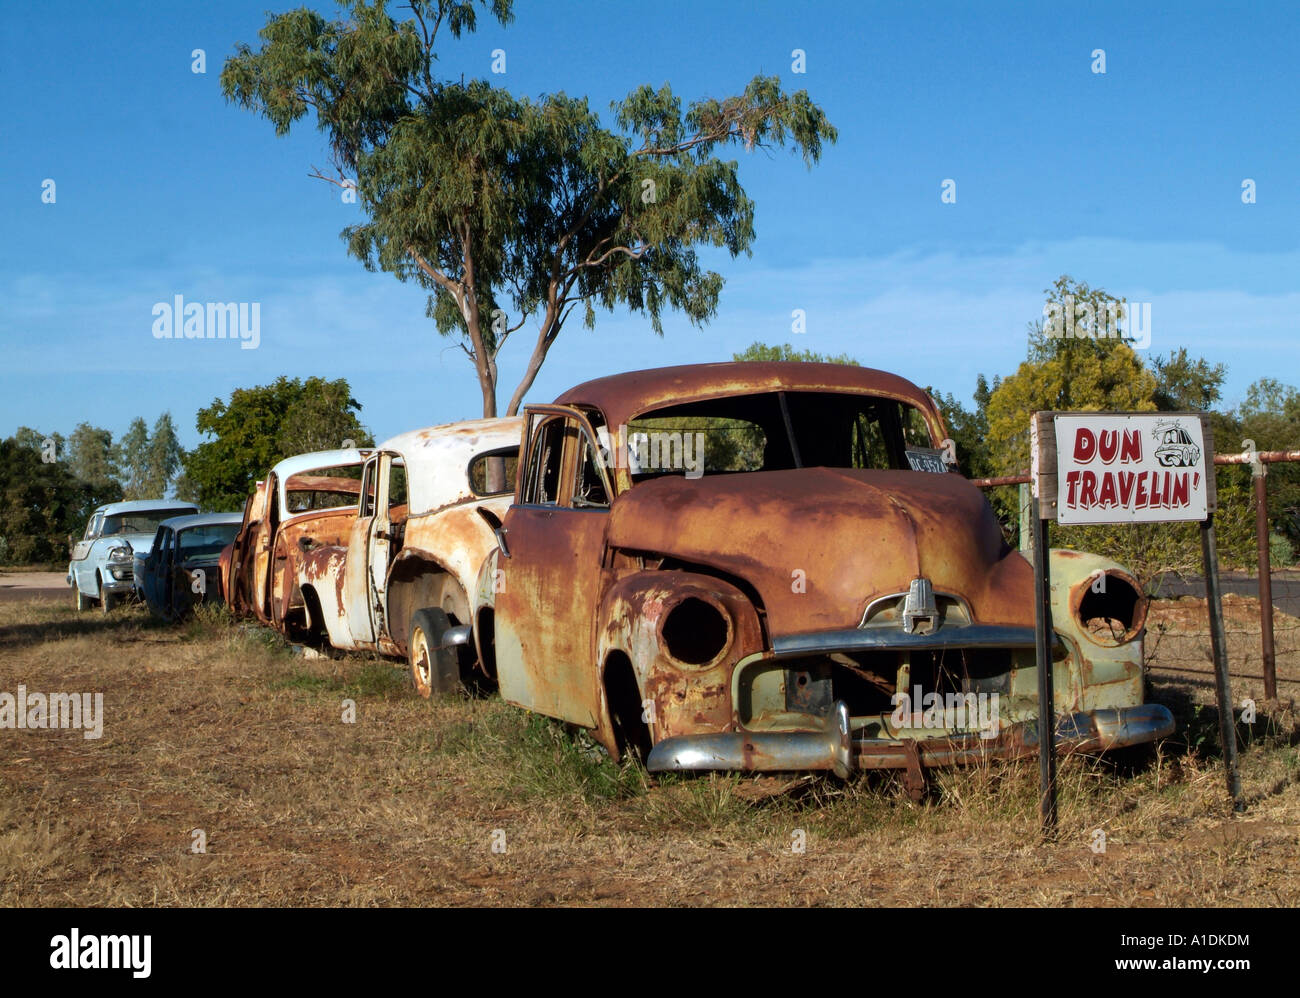 0ld car, rusted and abandoned, Winton, outback Queensland Australia. photo by Bruce Miller - Stock Image